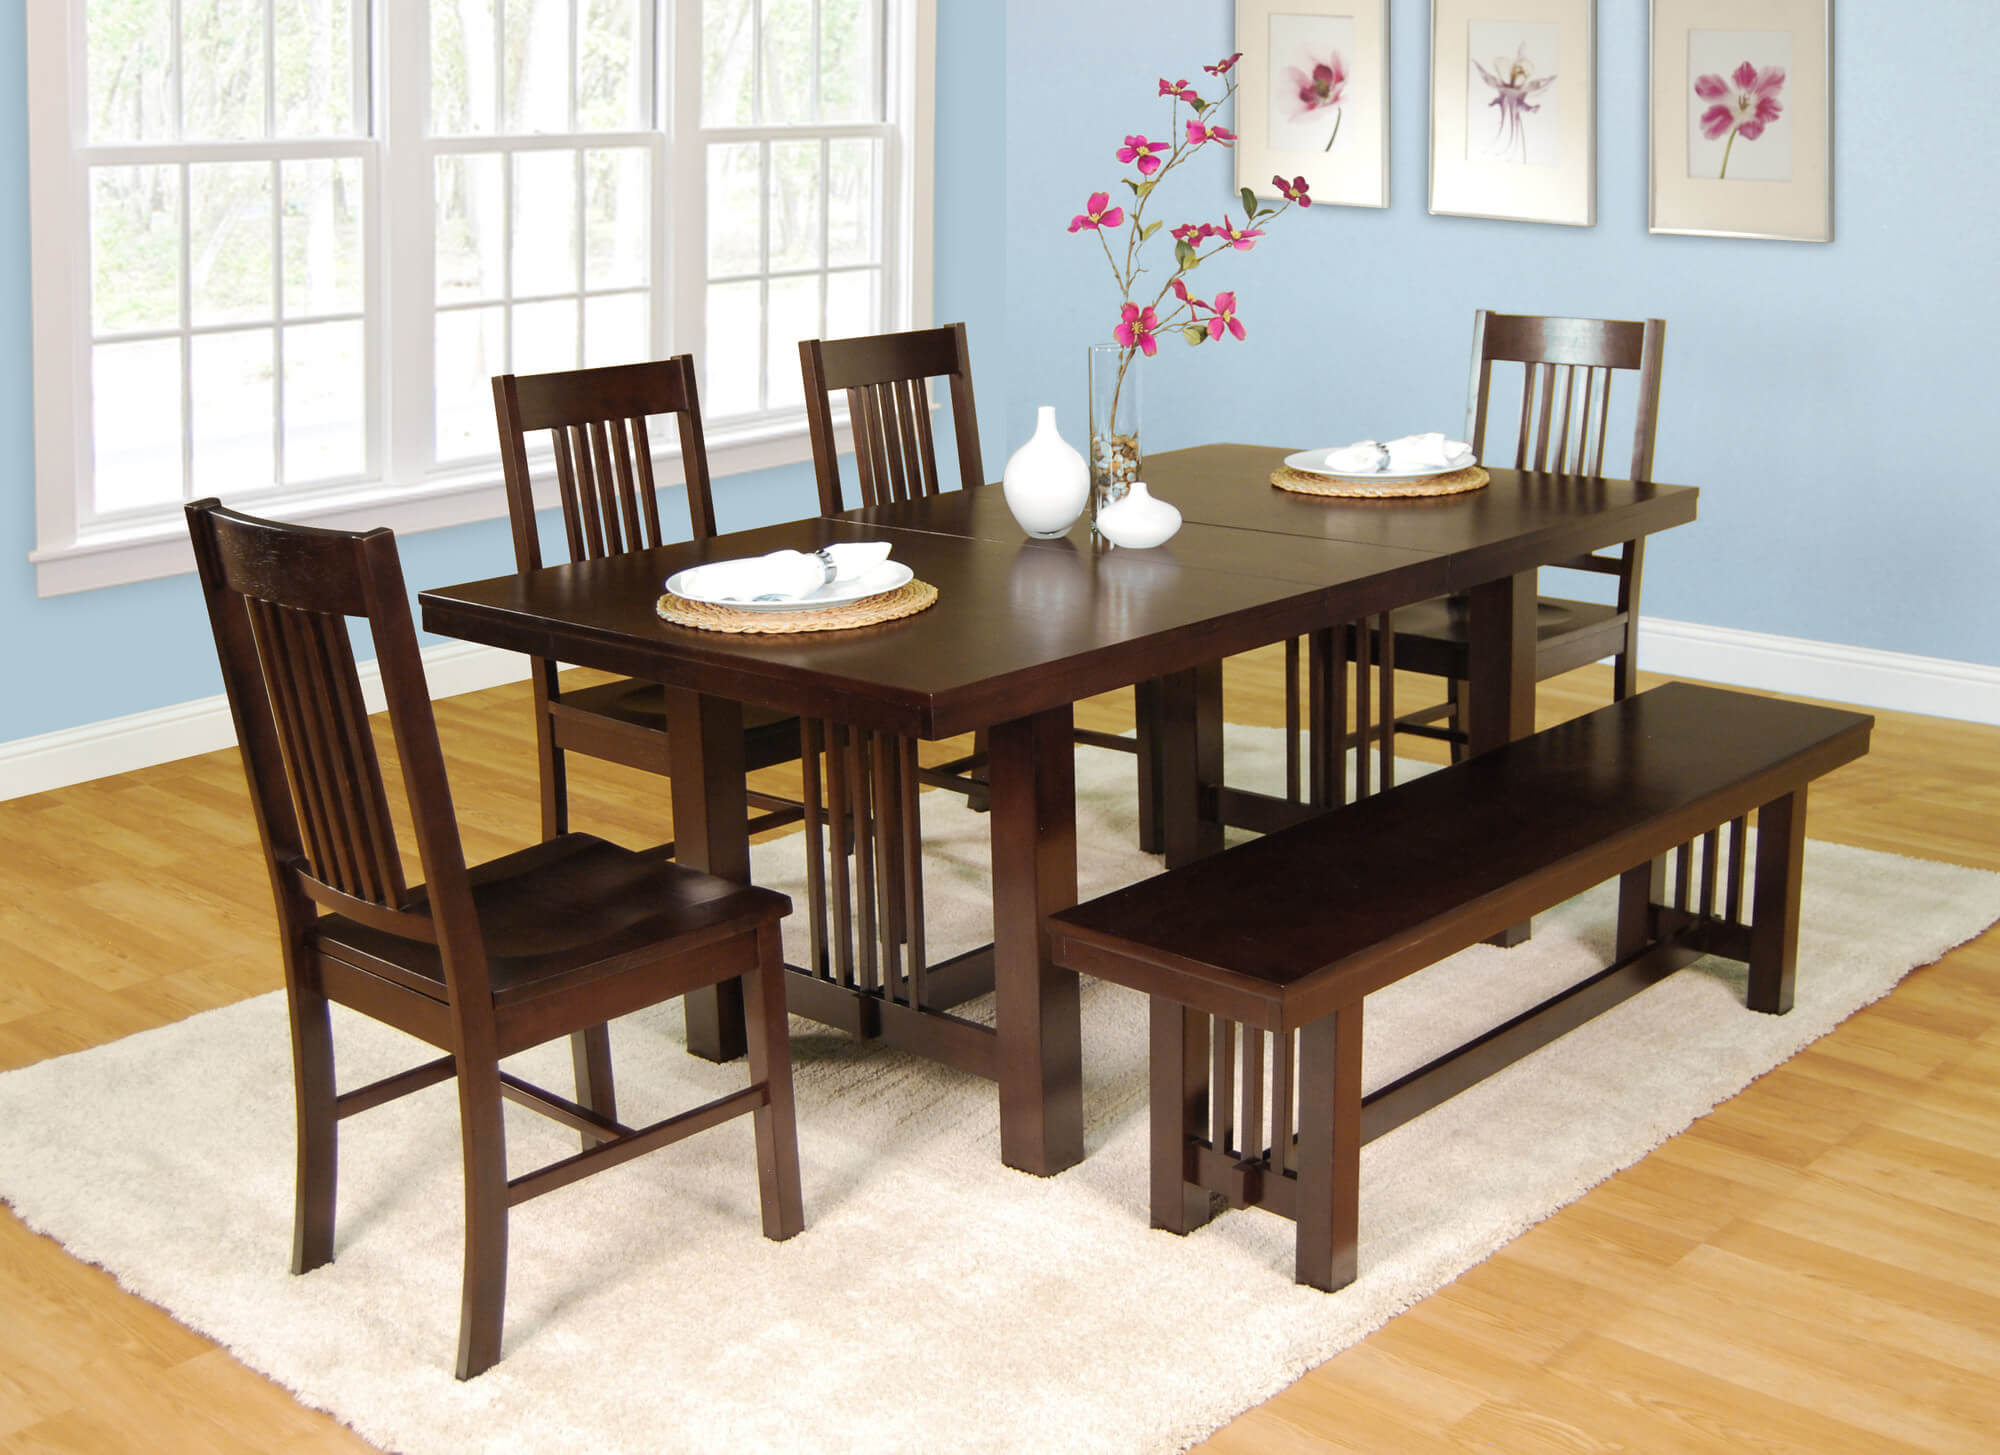 here 39 s a very solid dining set with bench table can be extended with